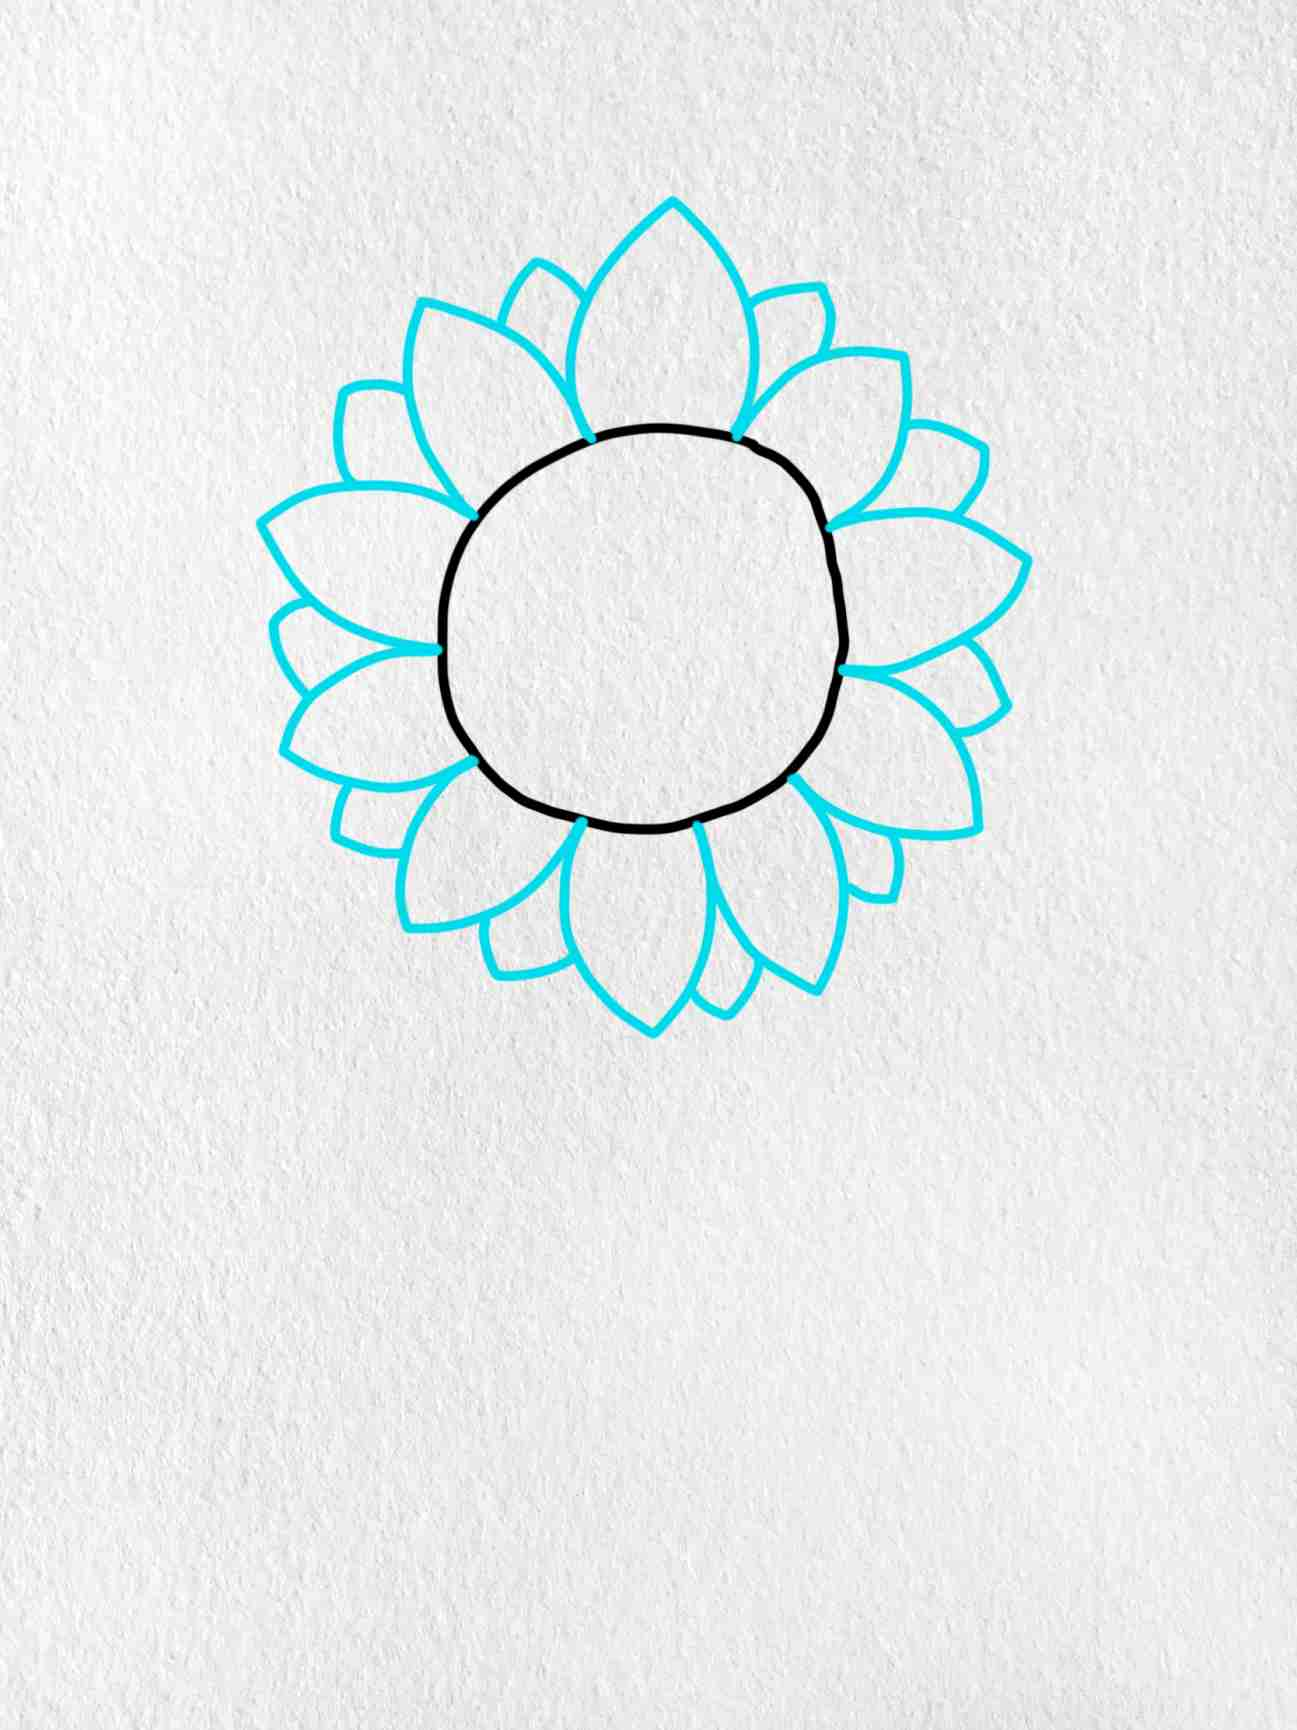 How To Draw Sunflowers: Step 2